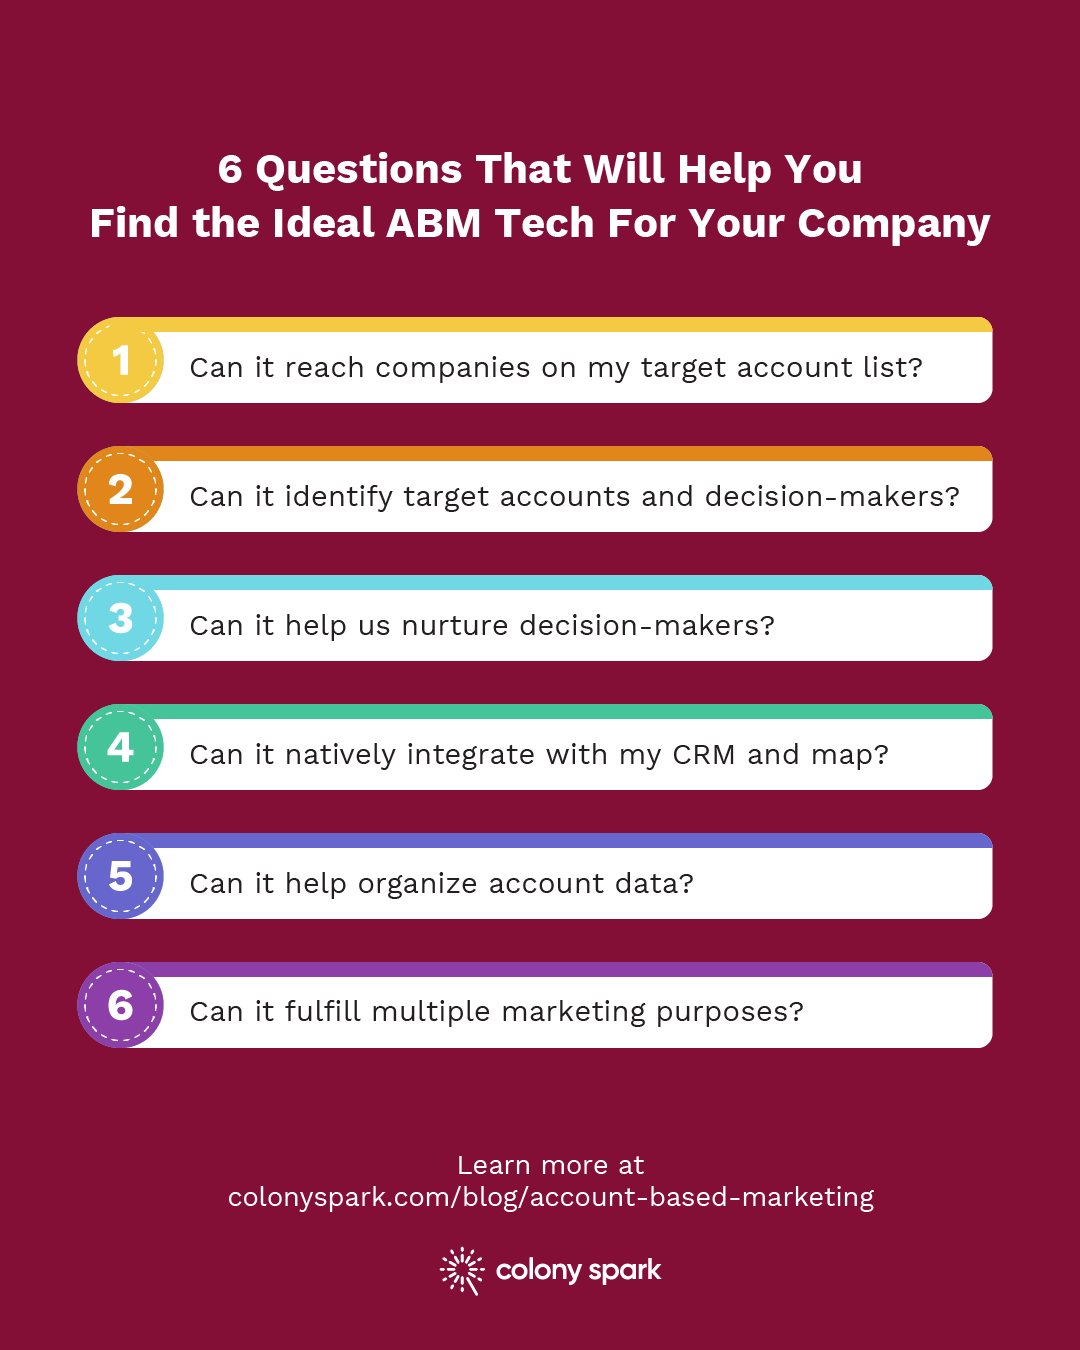 6 Questions That Will Help You Find the Ideal ABM Tech For Your Company